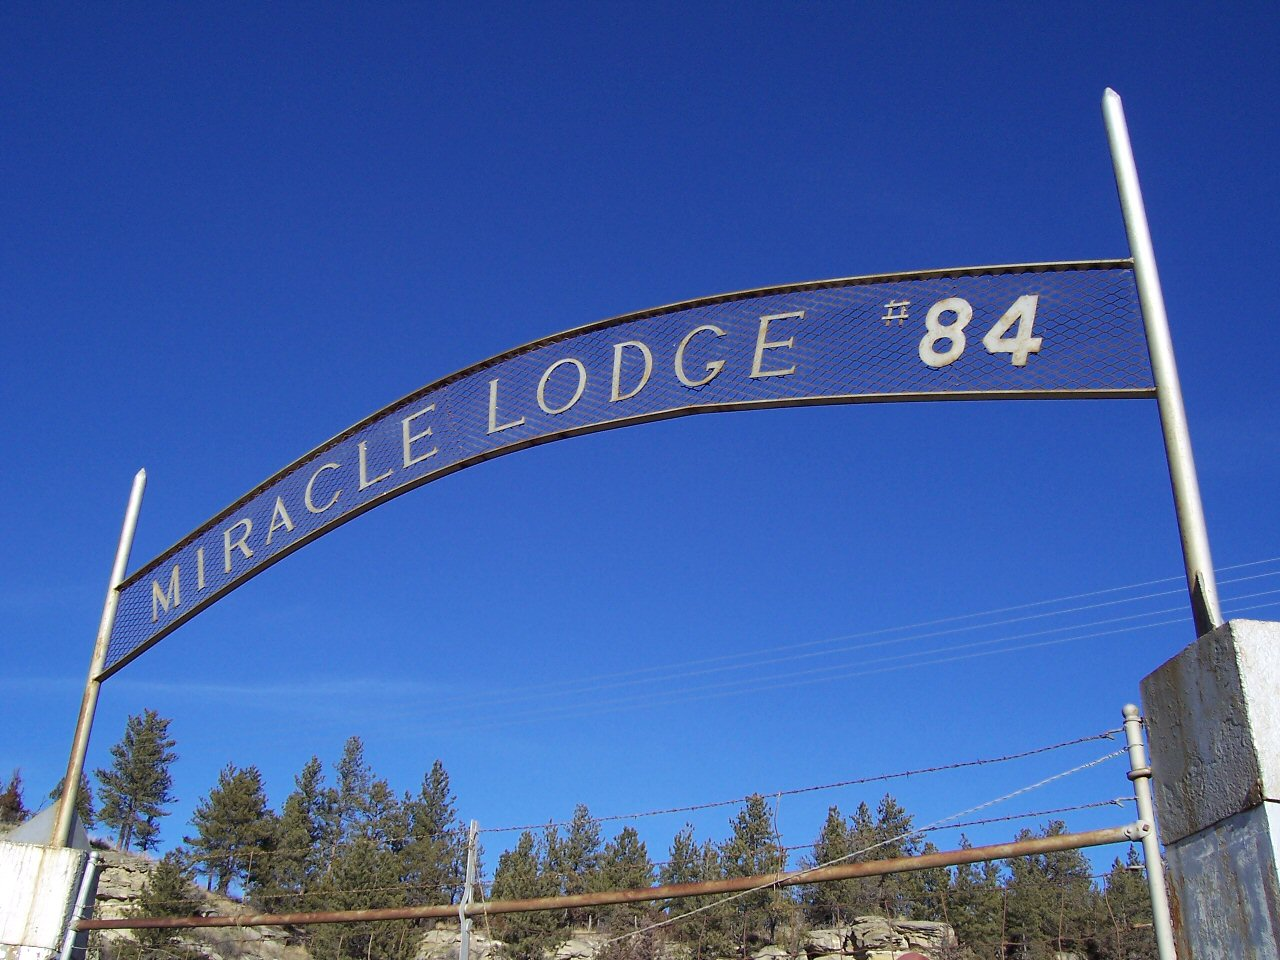 Miracle Lodge Number 84 Cemetery